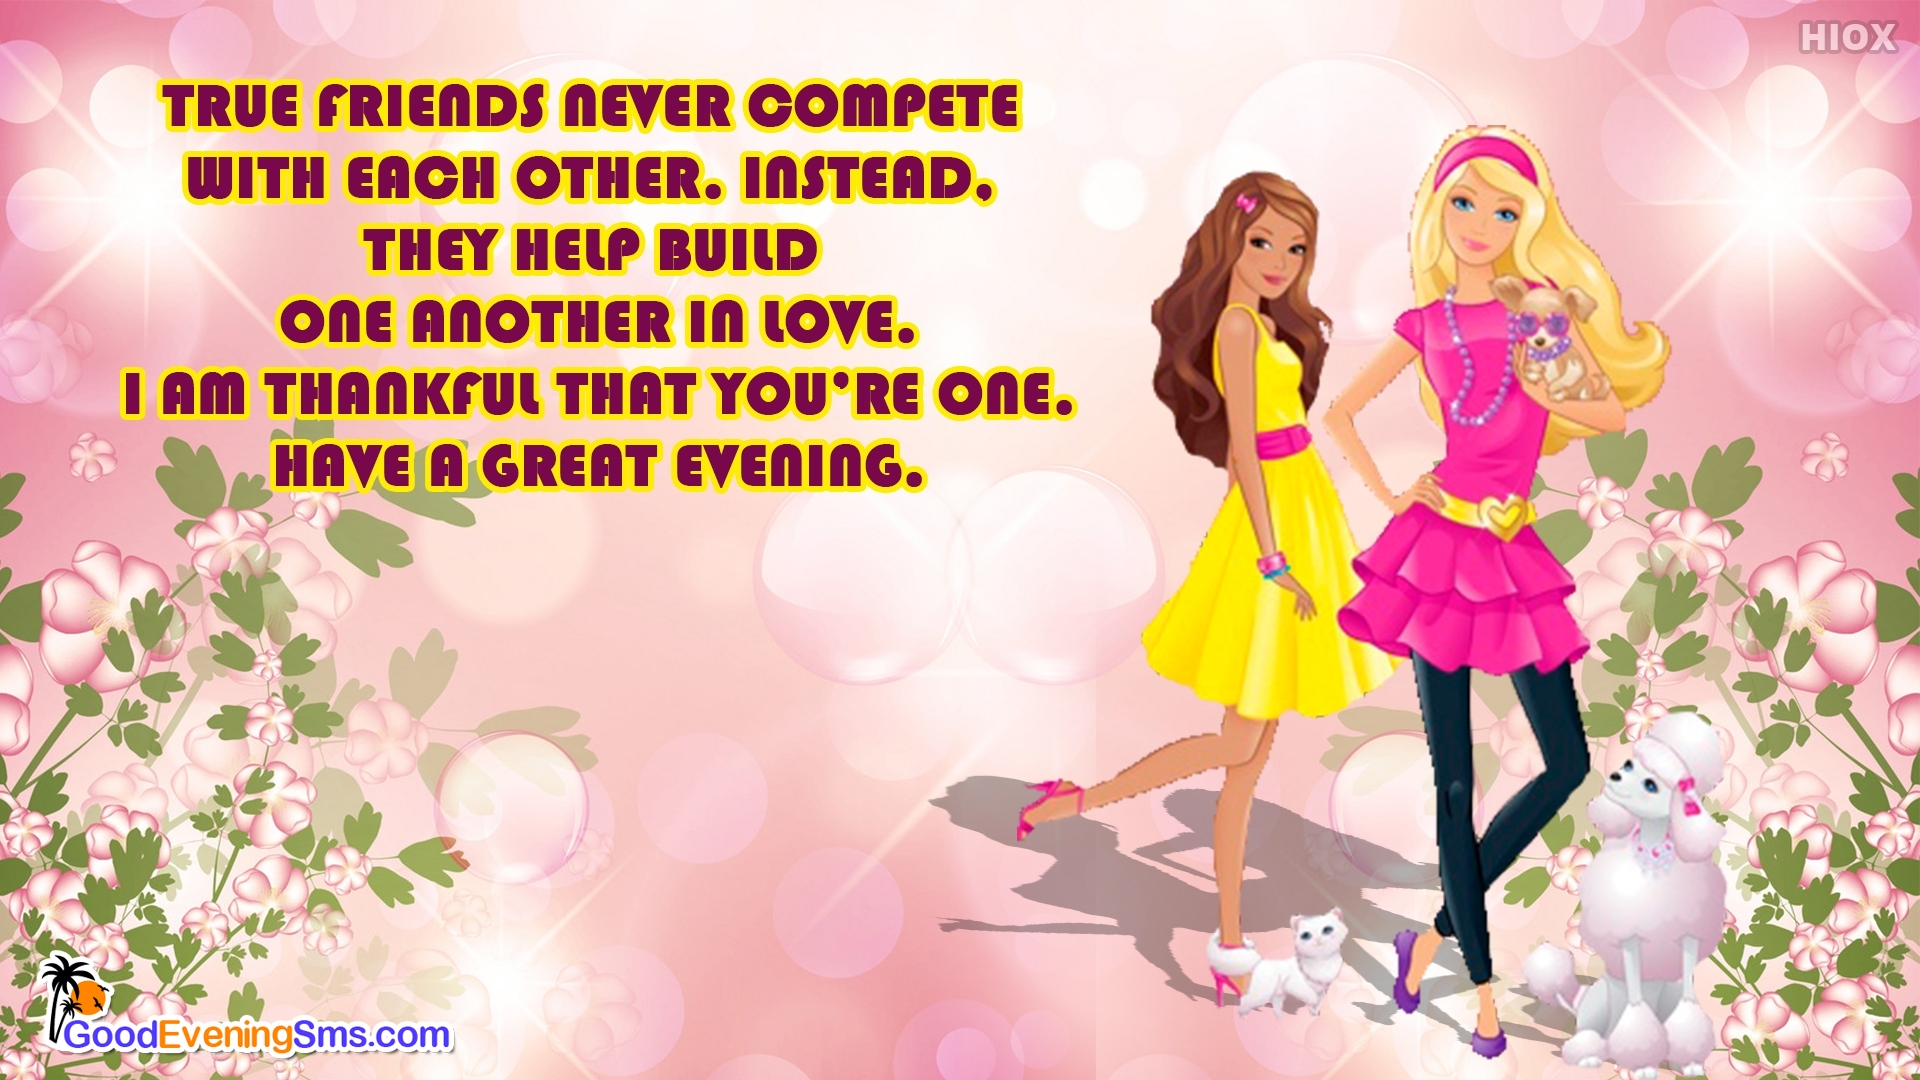 Friends Never Compete With Each Other Evening Quotes